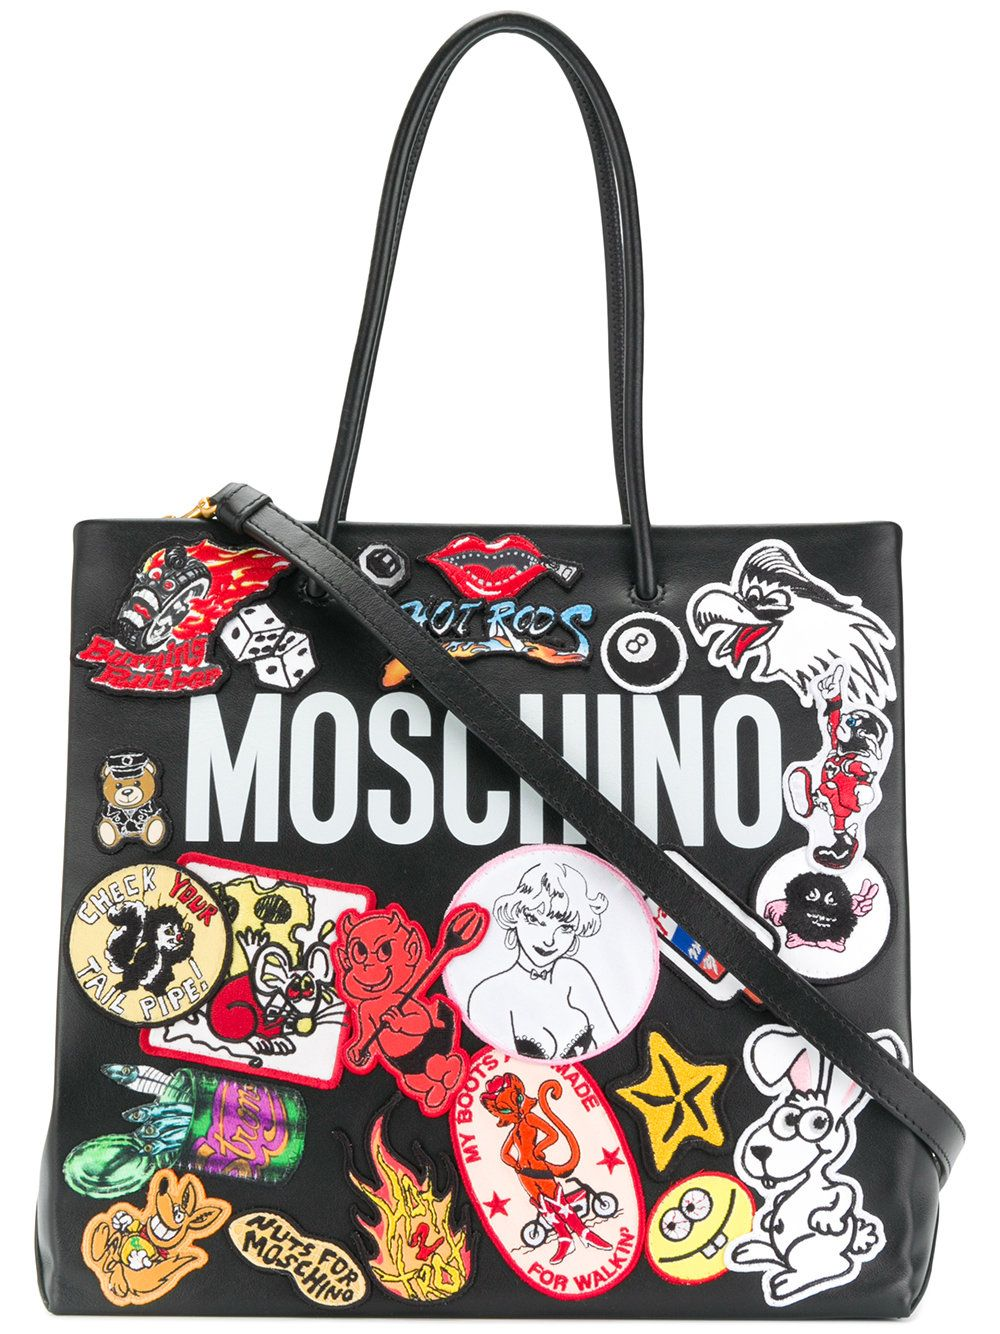 191c7576853 Moschino logo patch tote bag   Mignons Sacs   Pinterest   Bags ...